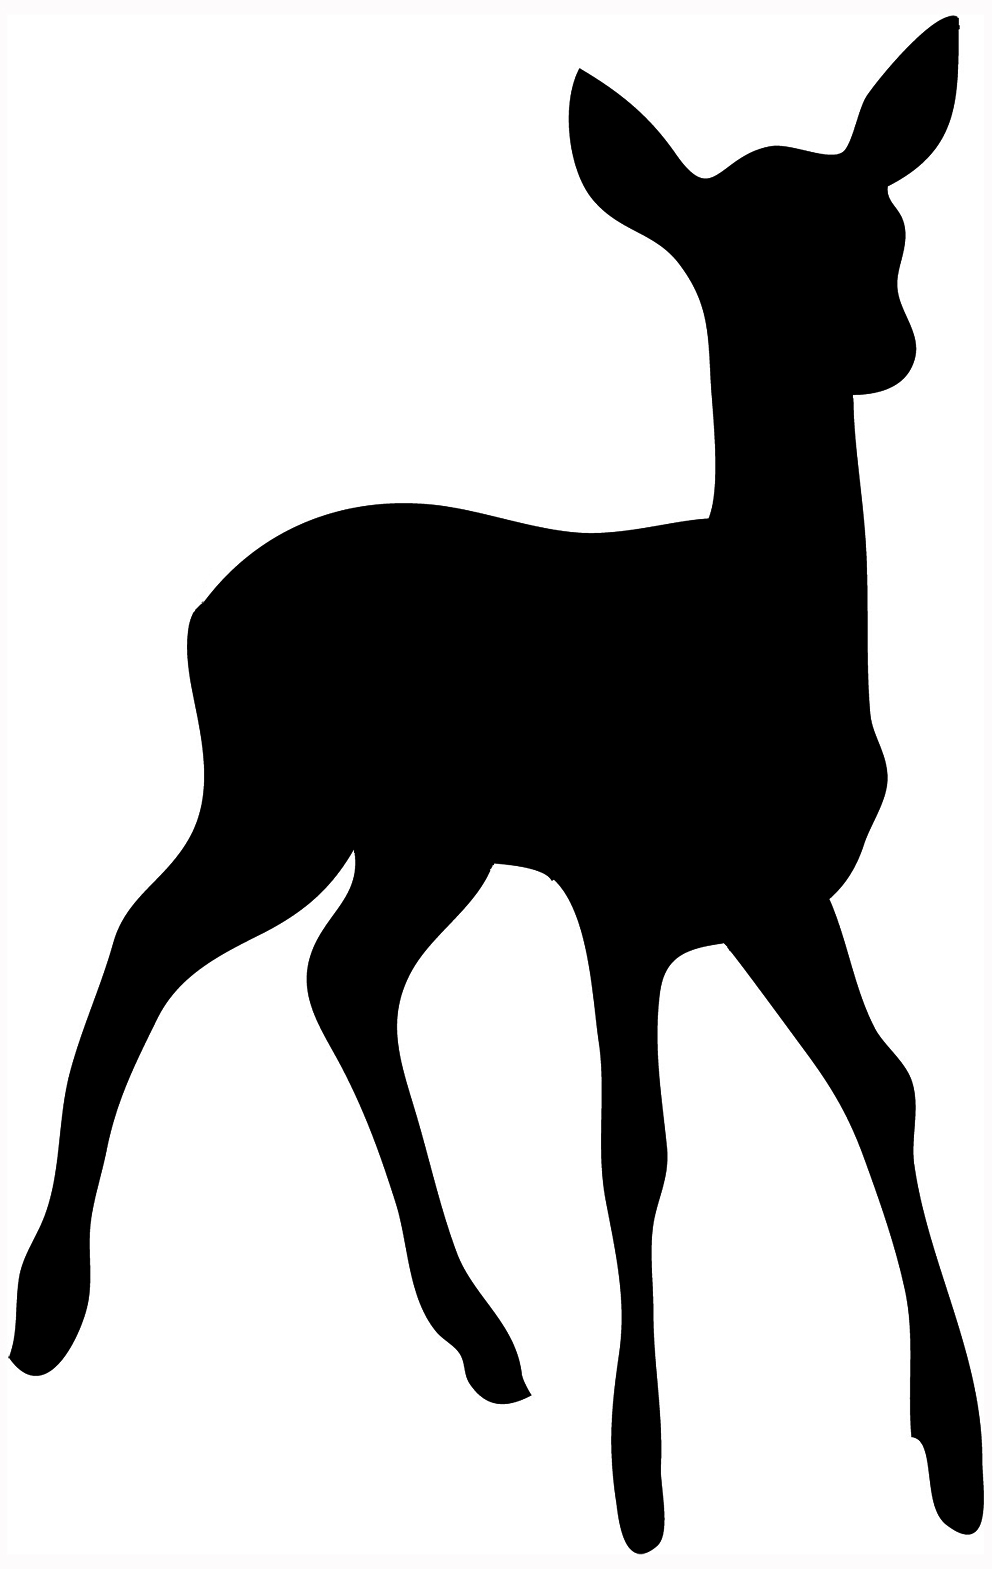 hight resolution of silhouette of stag silhouette of young deer